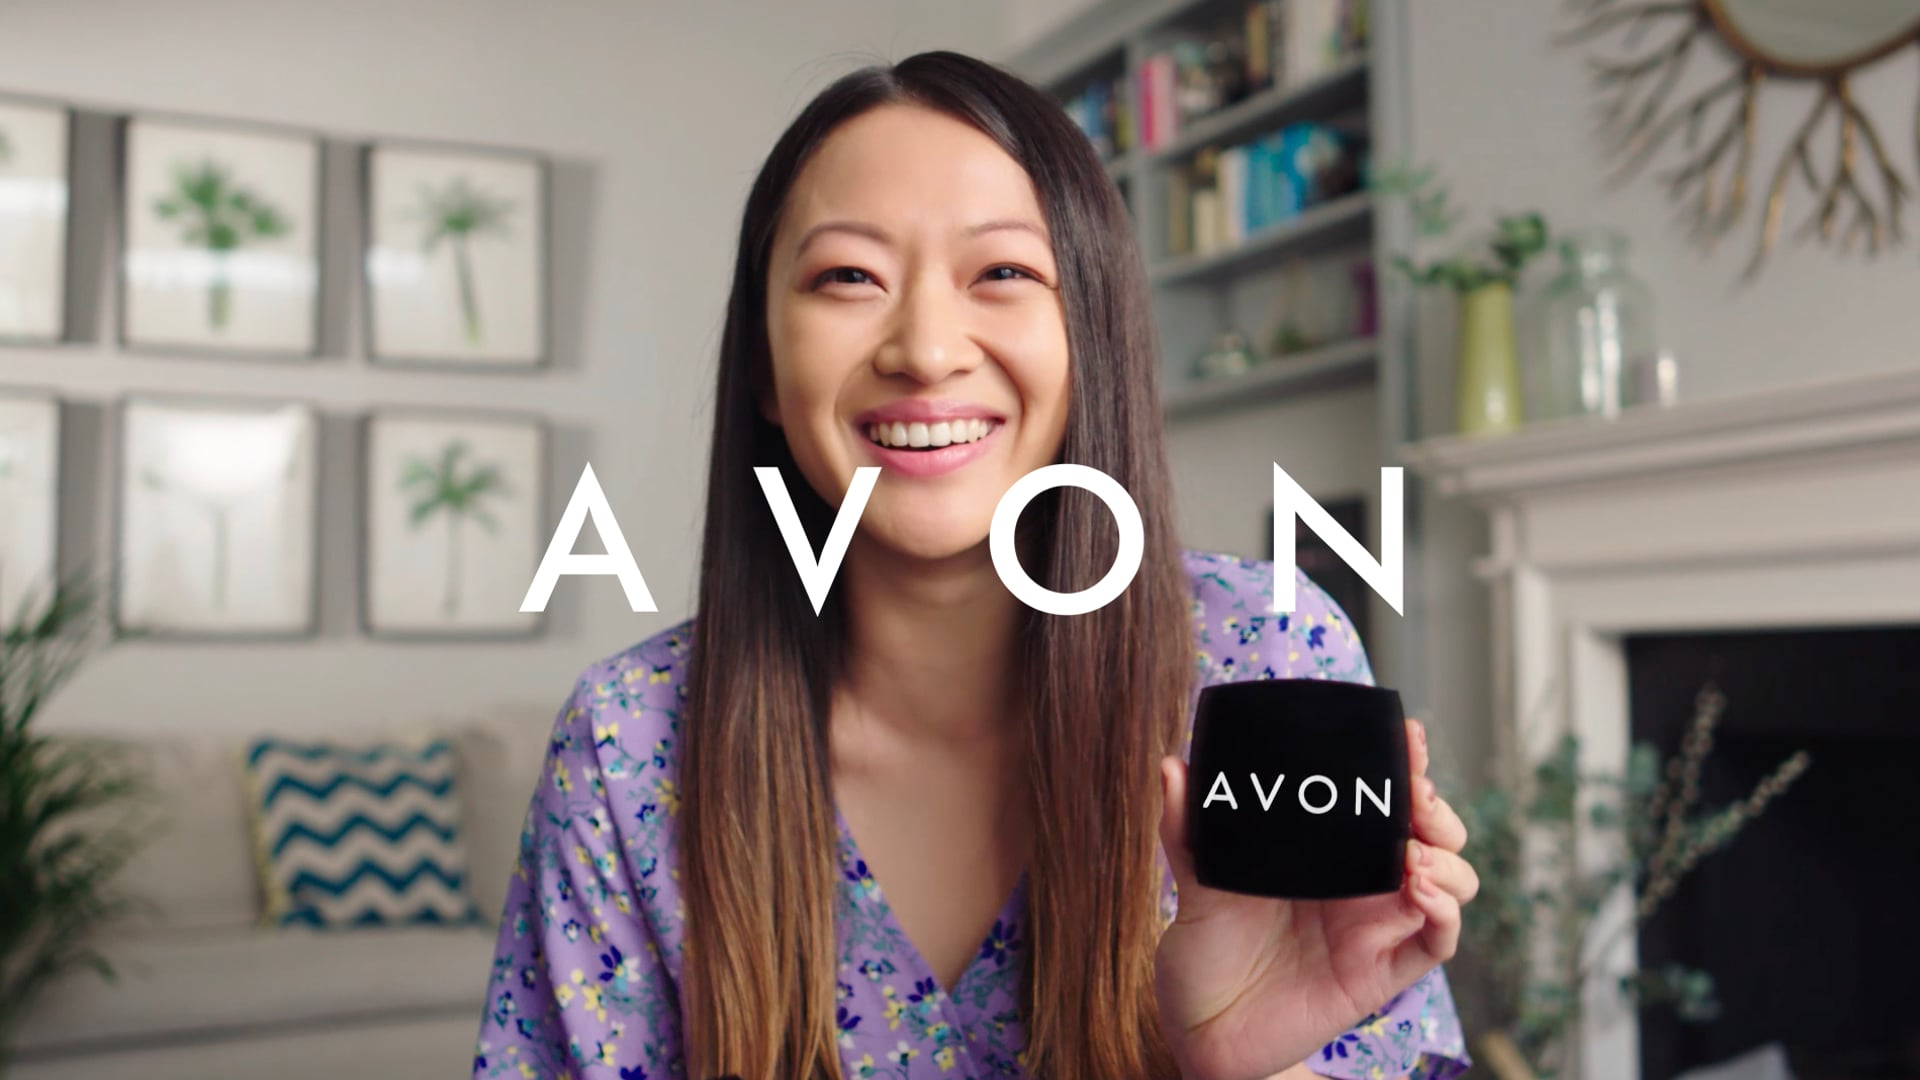 Avon | 9 out of 10